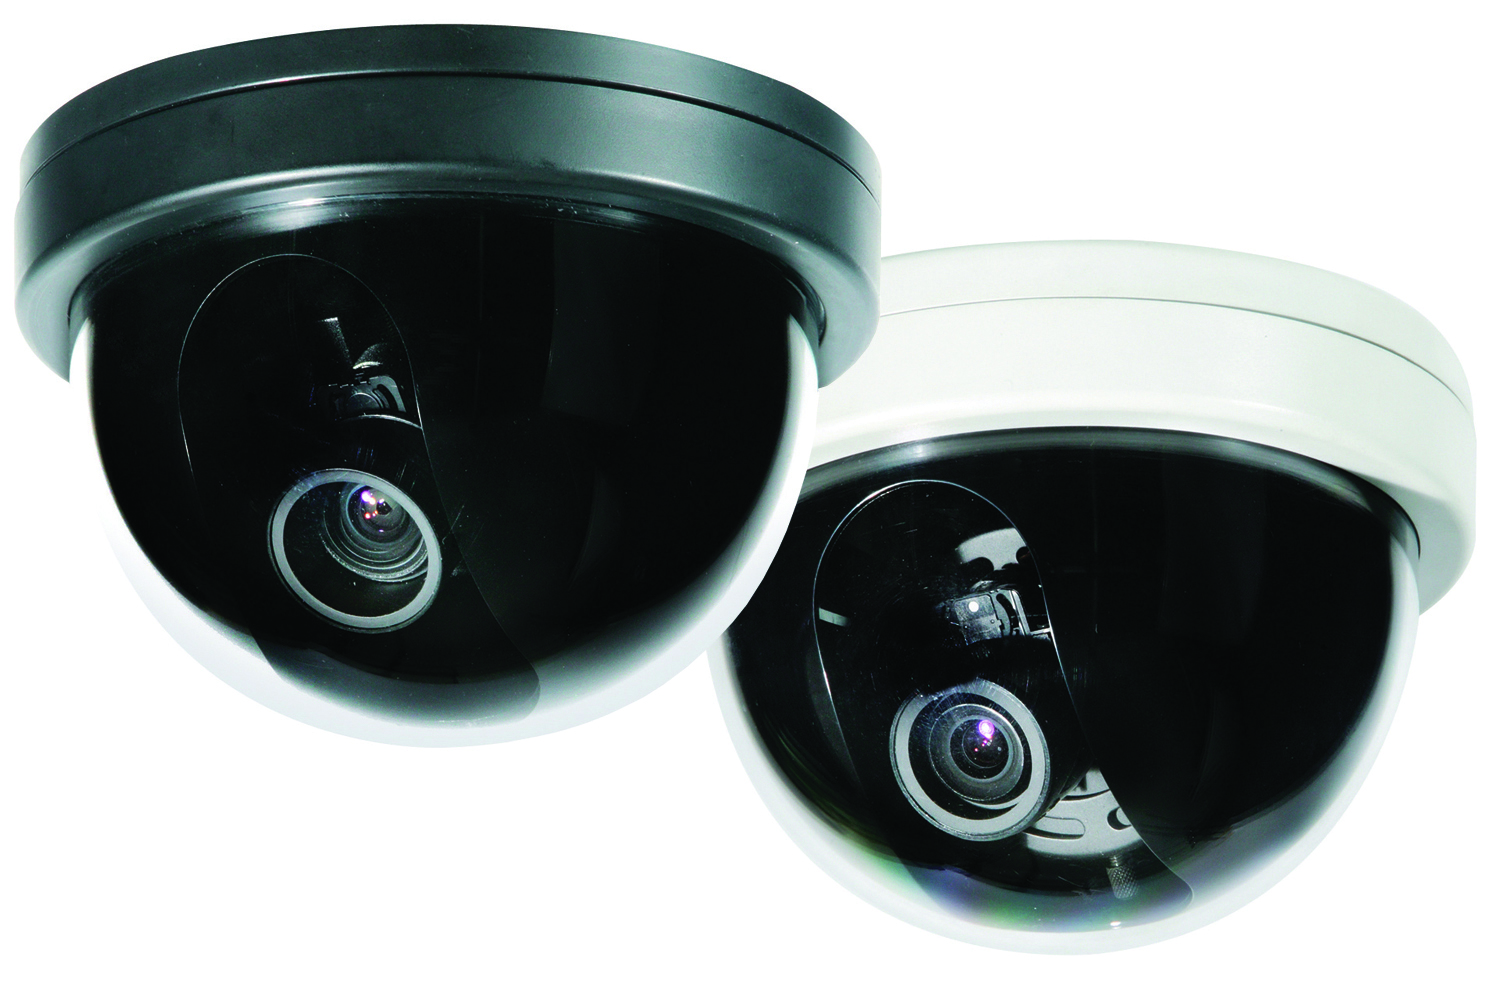 security cameras and video surveillance systems rh californiasecuritypro com